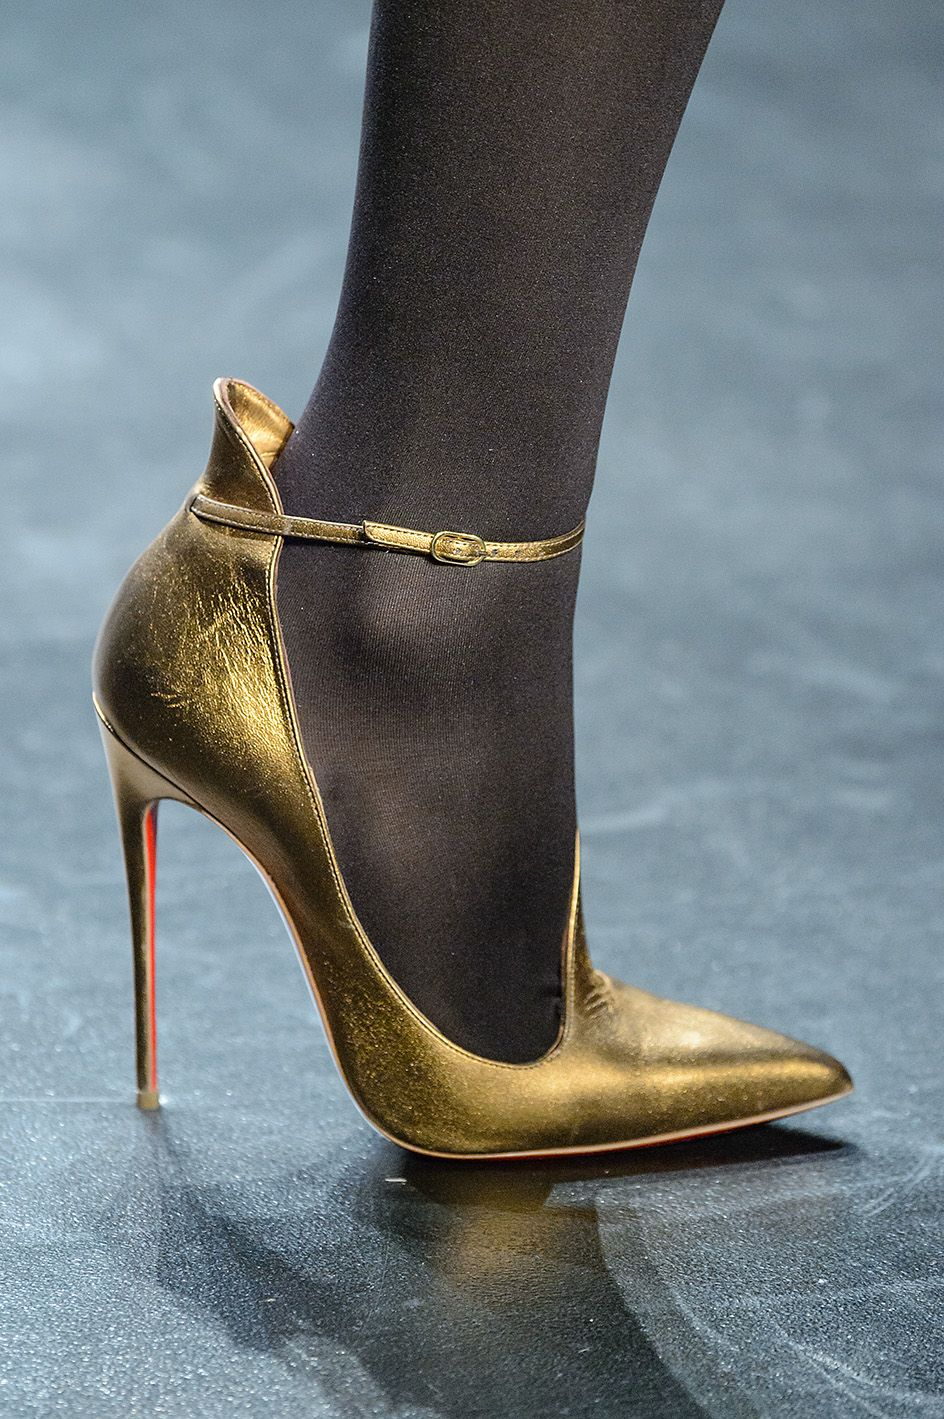 Collezioni Accessori n°84, #BibhuMohapatra Globalized Galaxy  Focus on #AW16/17 #shoes #fashion #style #mood #glamour #romantic #metal #golden